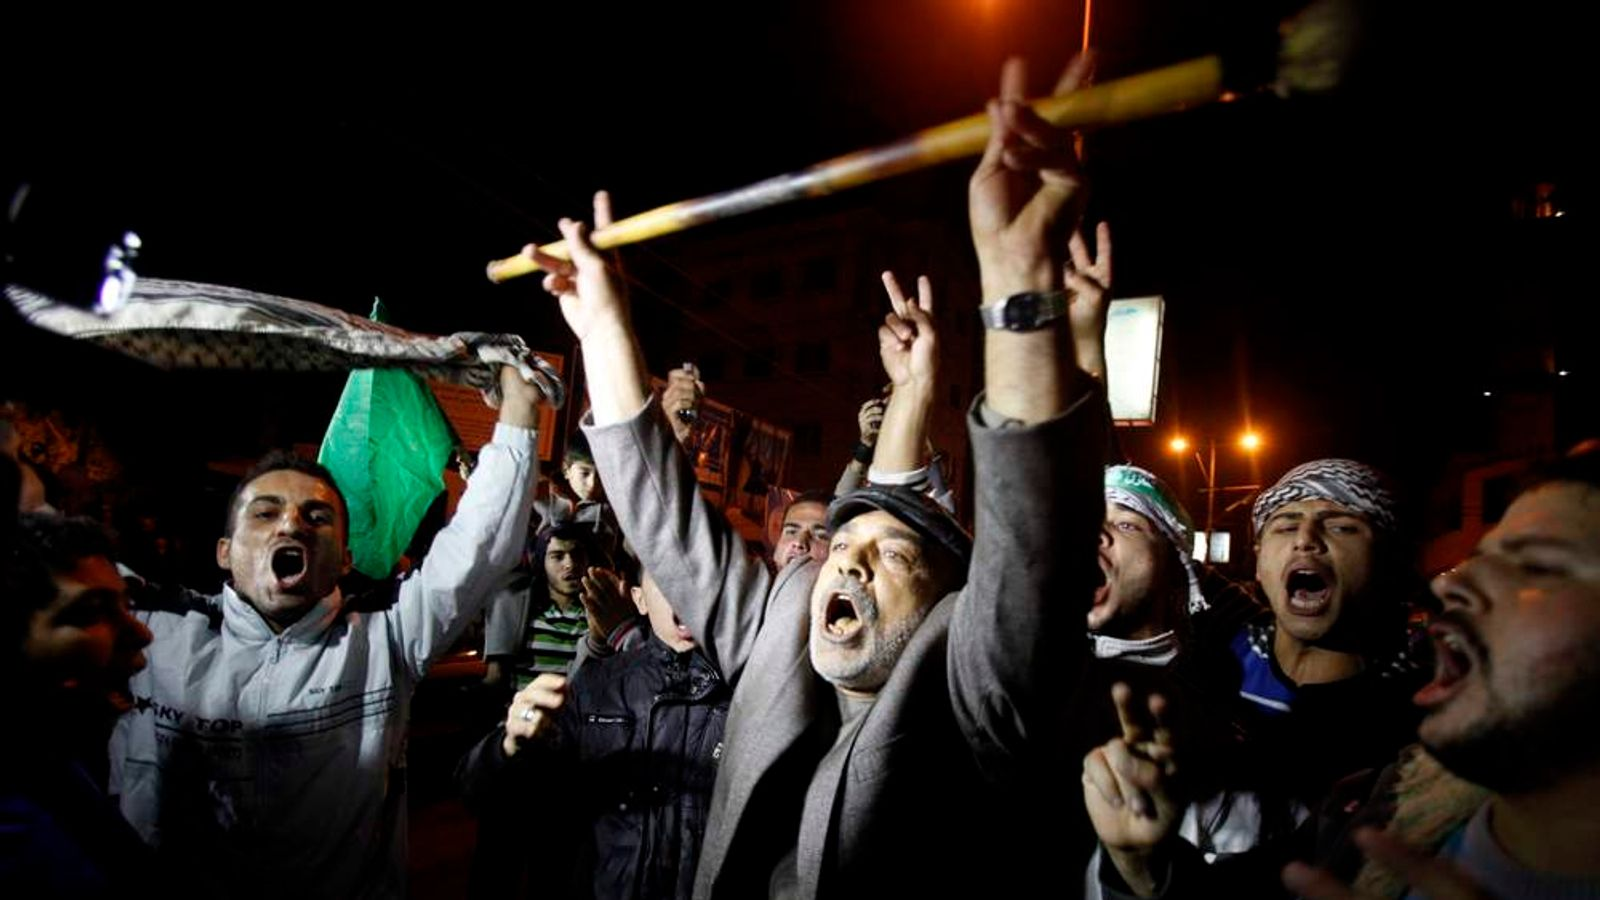 Palestinians celebrate what they say is a victory over Israel after an eight-day conflict in Gaza City November 21, 2012.